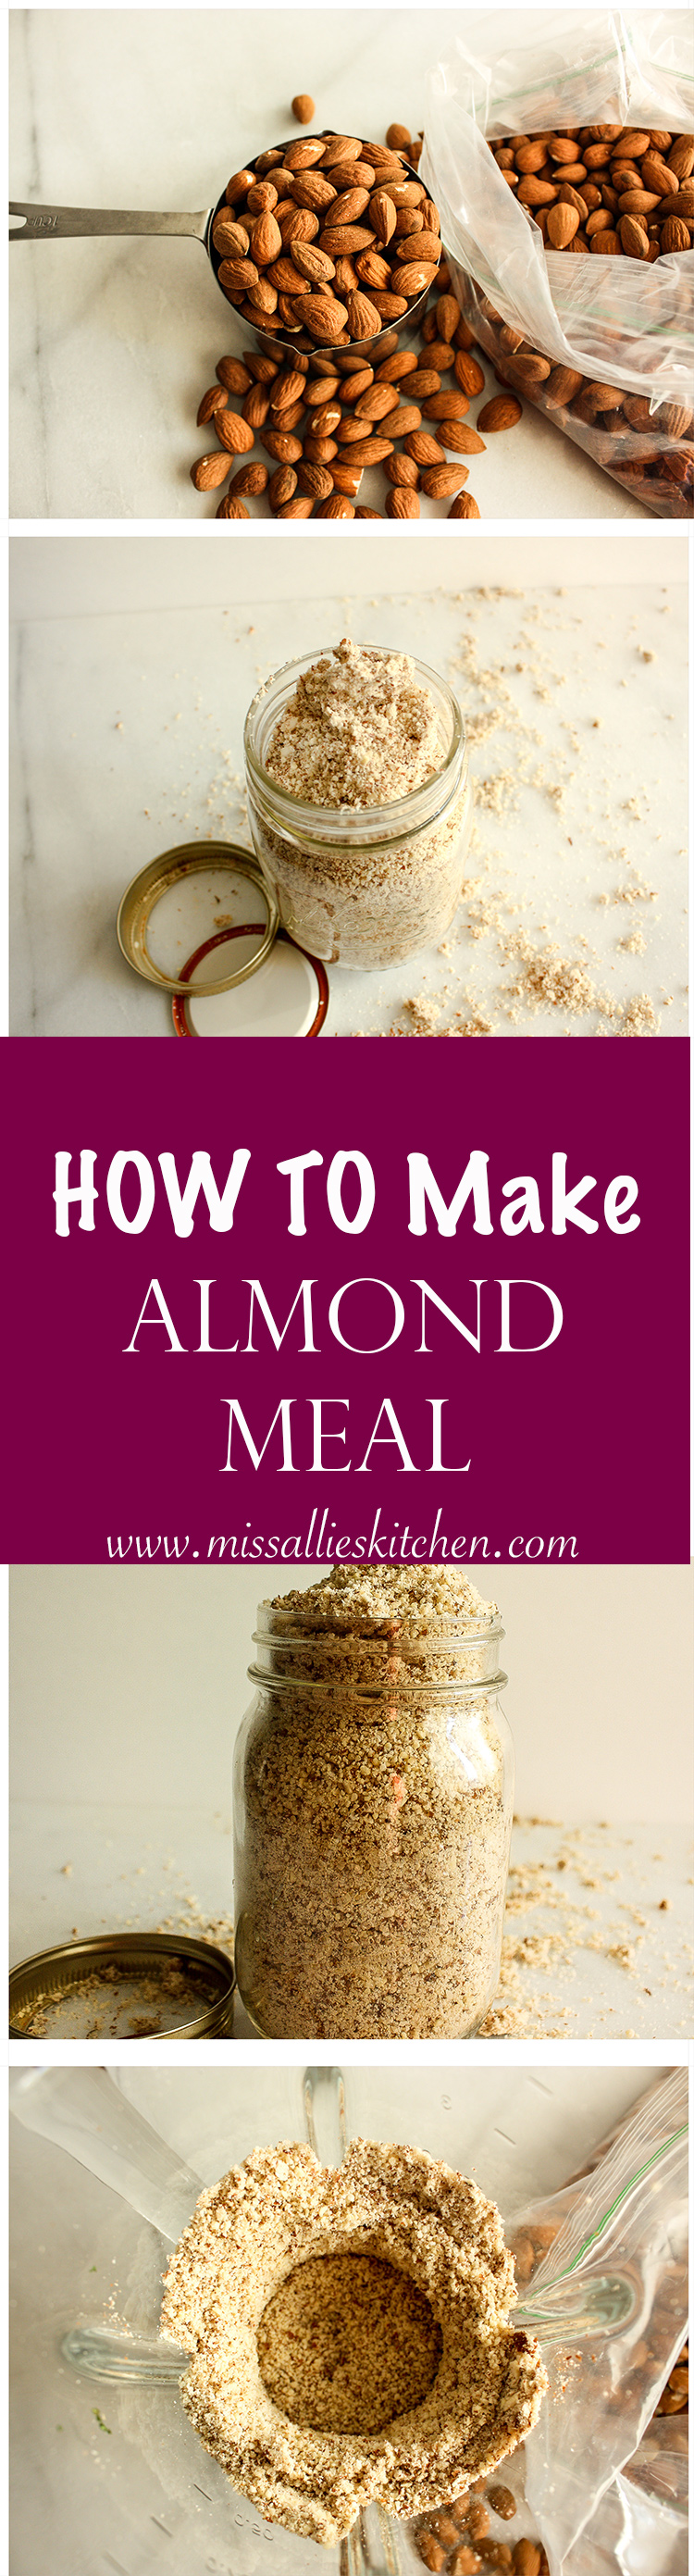 how-to-make-almond-meal-miss-allies-kitchen